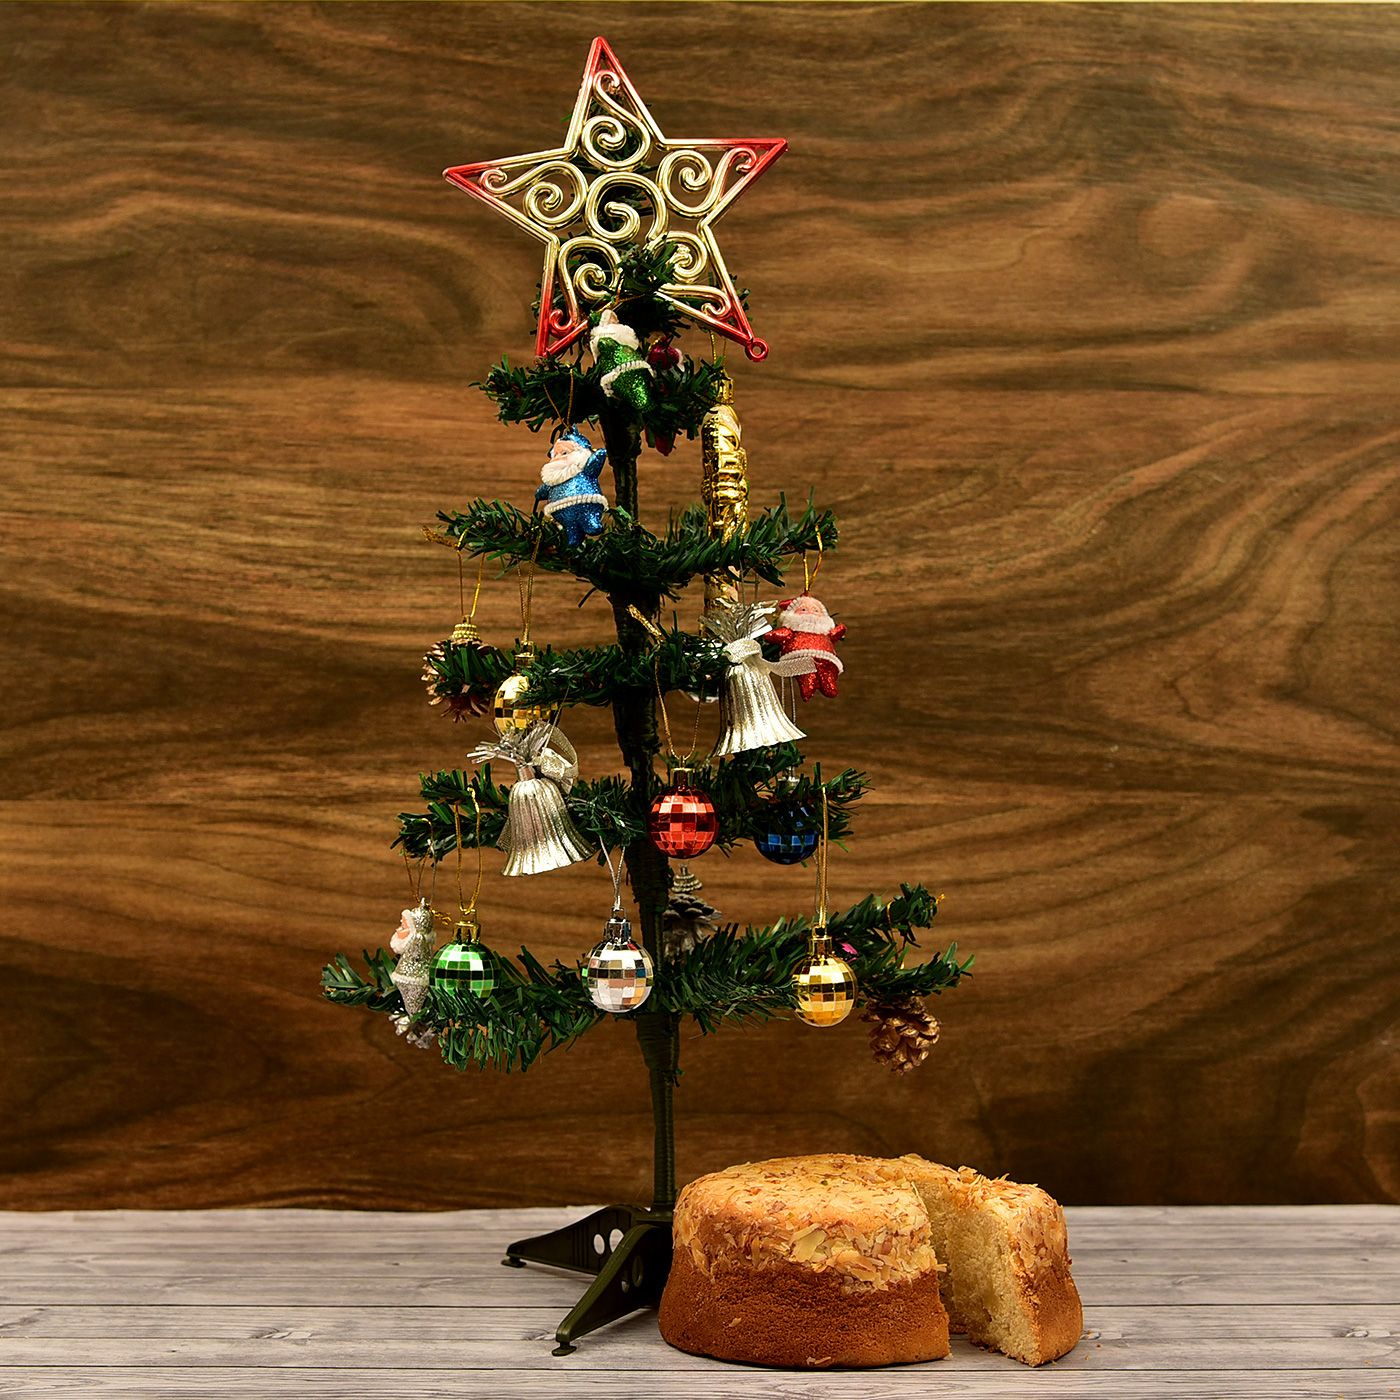 Christmas Tree With Decor Items And Almond Cake Online Christmas Gifts Buy Christmas Gifts Buy Christmas Tree